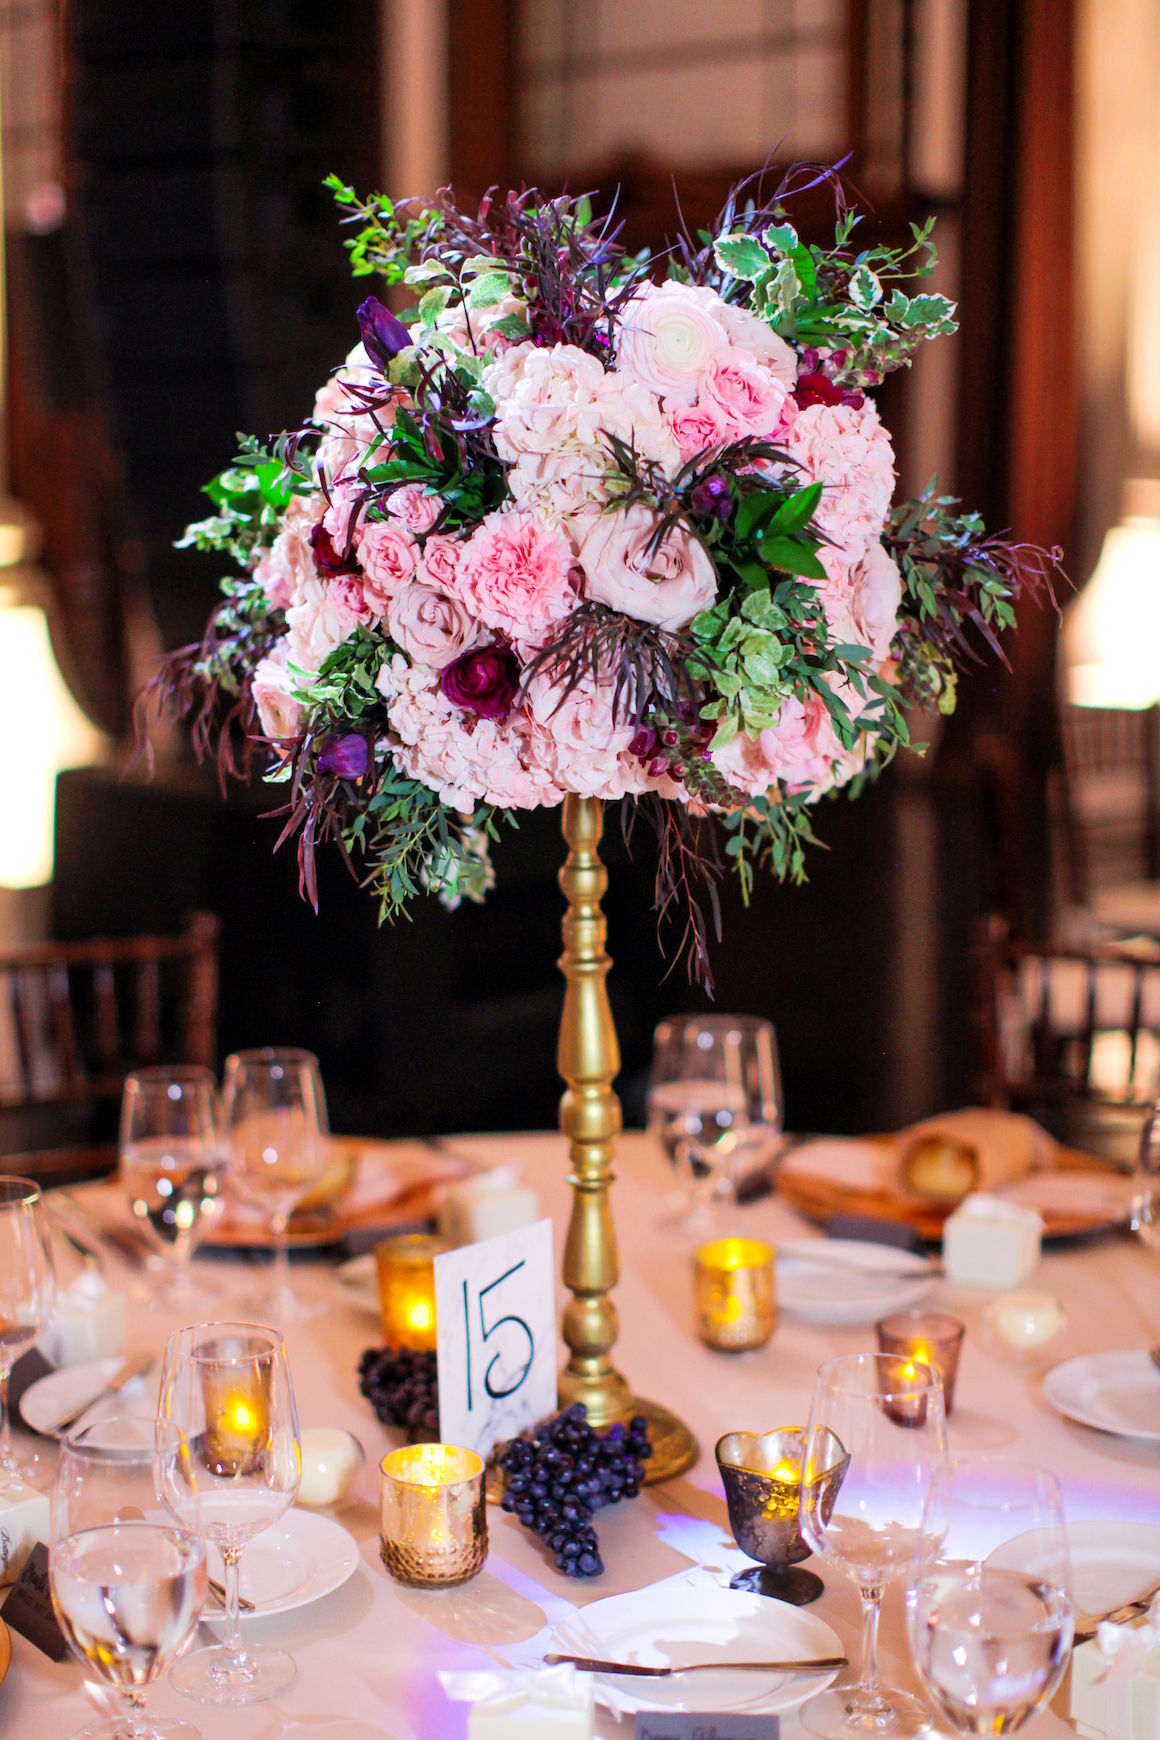 Organic Baroque Wedding Featured on Reverie Gallery - Hylah White Special Events